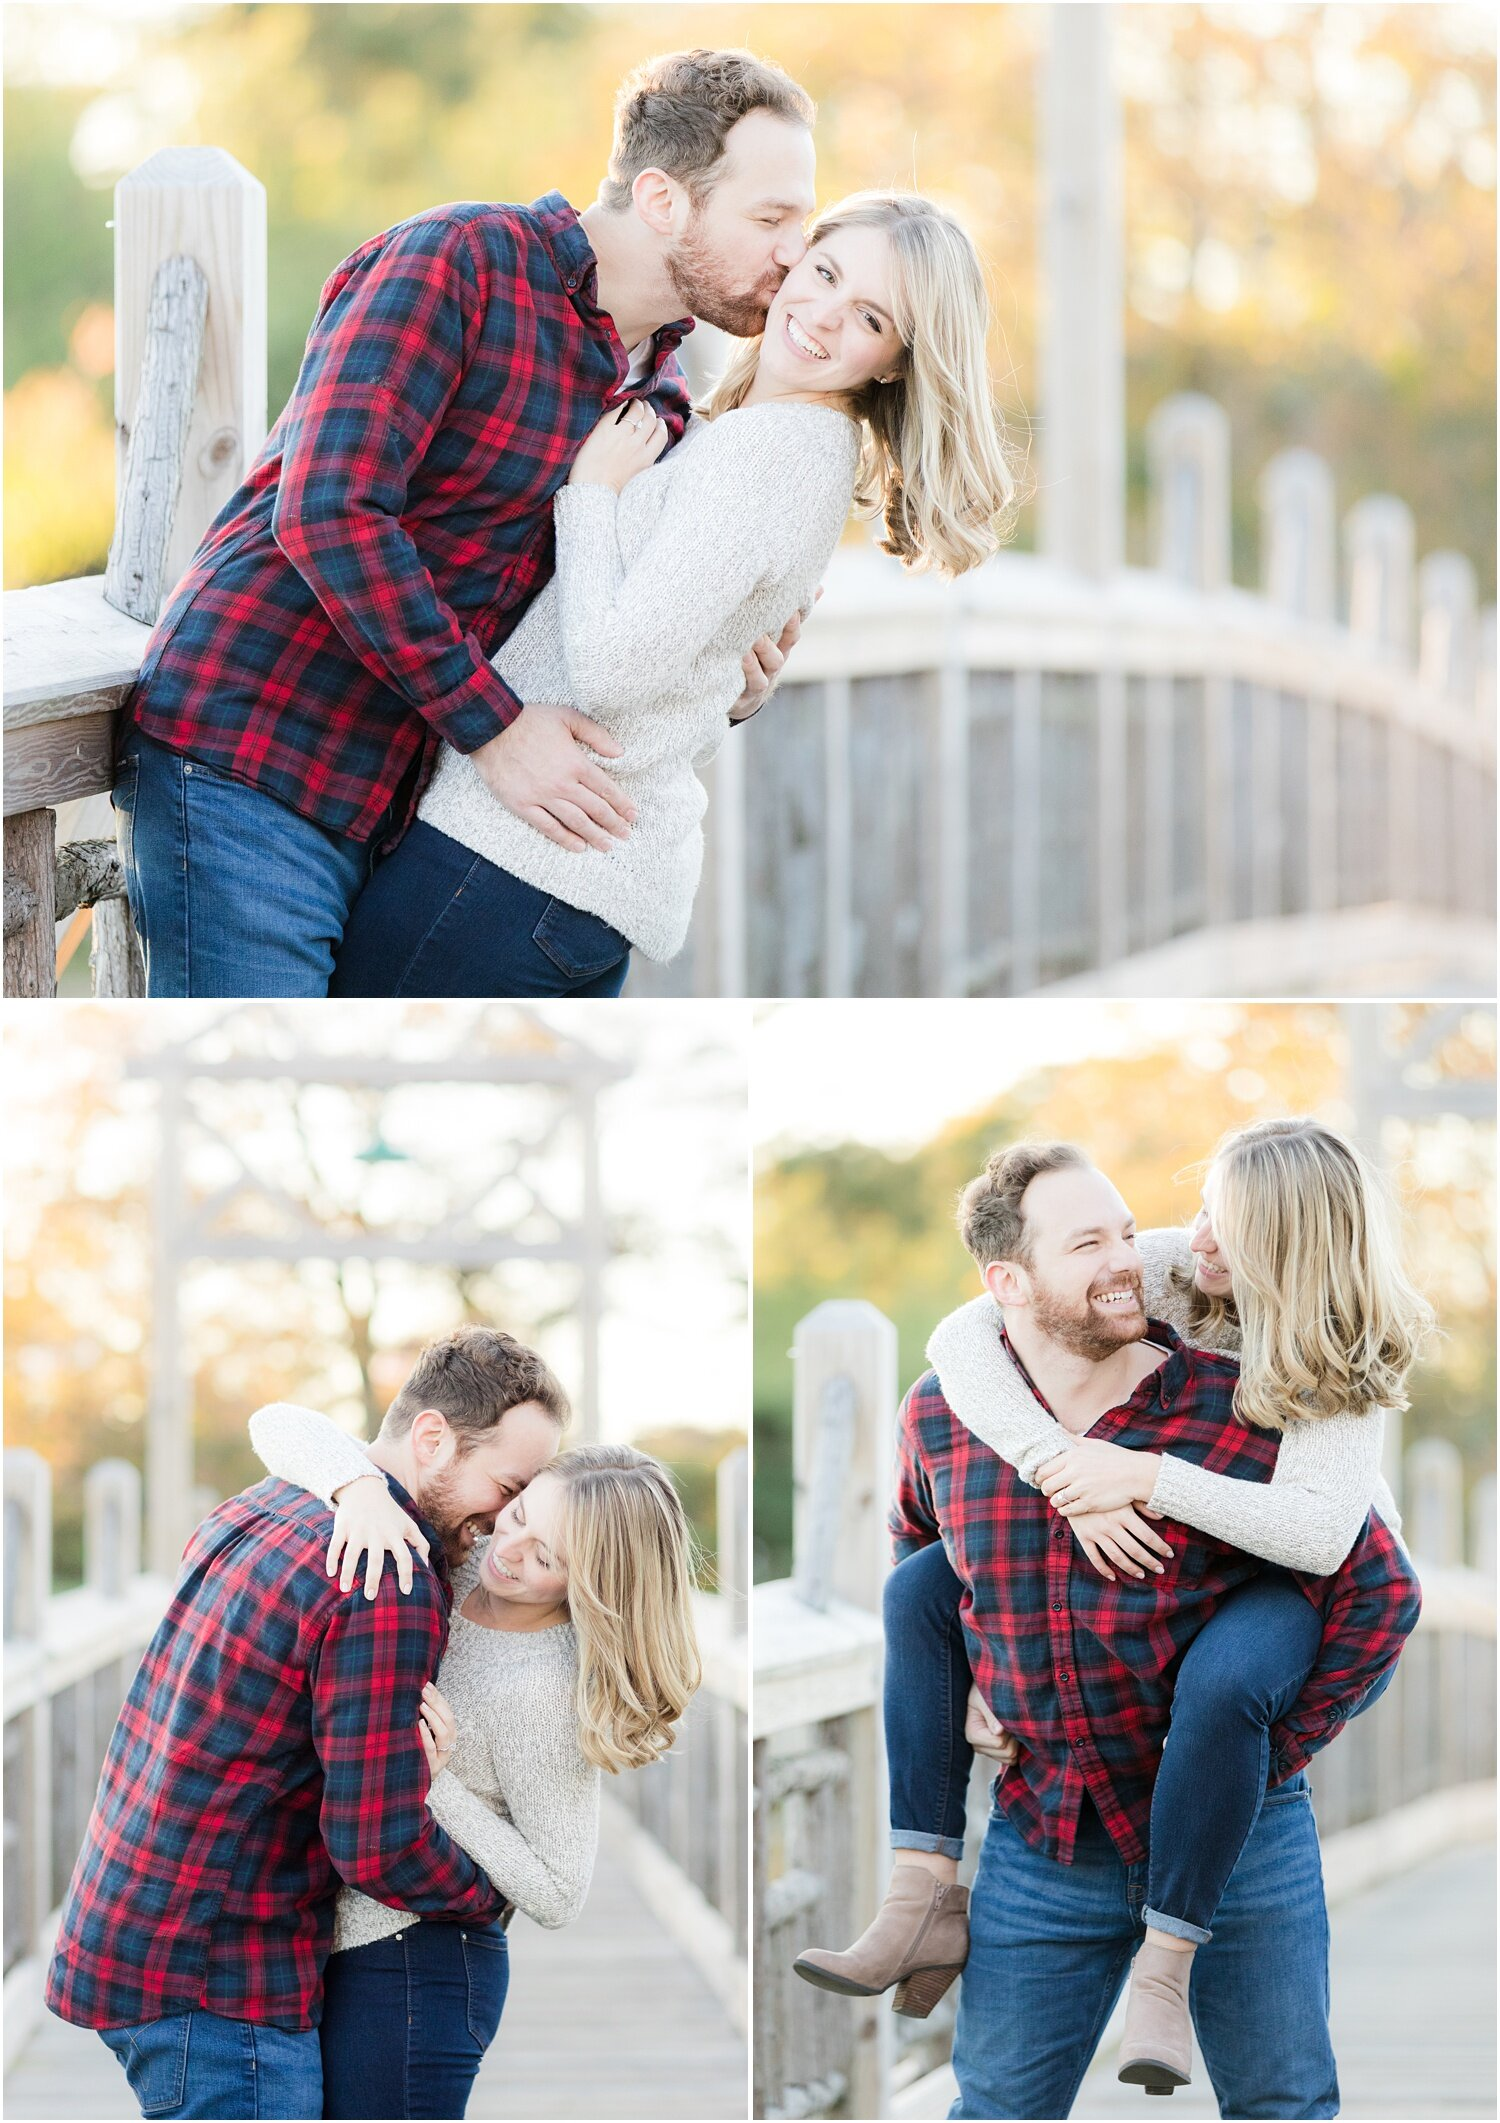 Fun engagement photos on the bridge in spring lake, NJ.